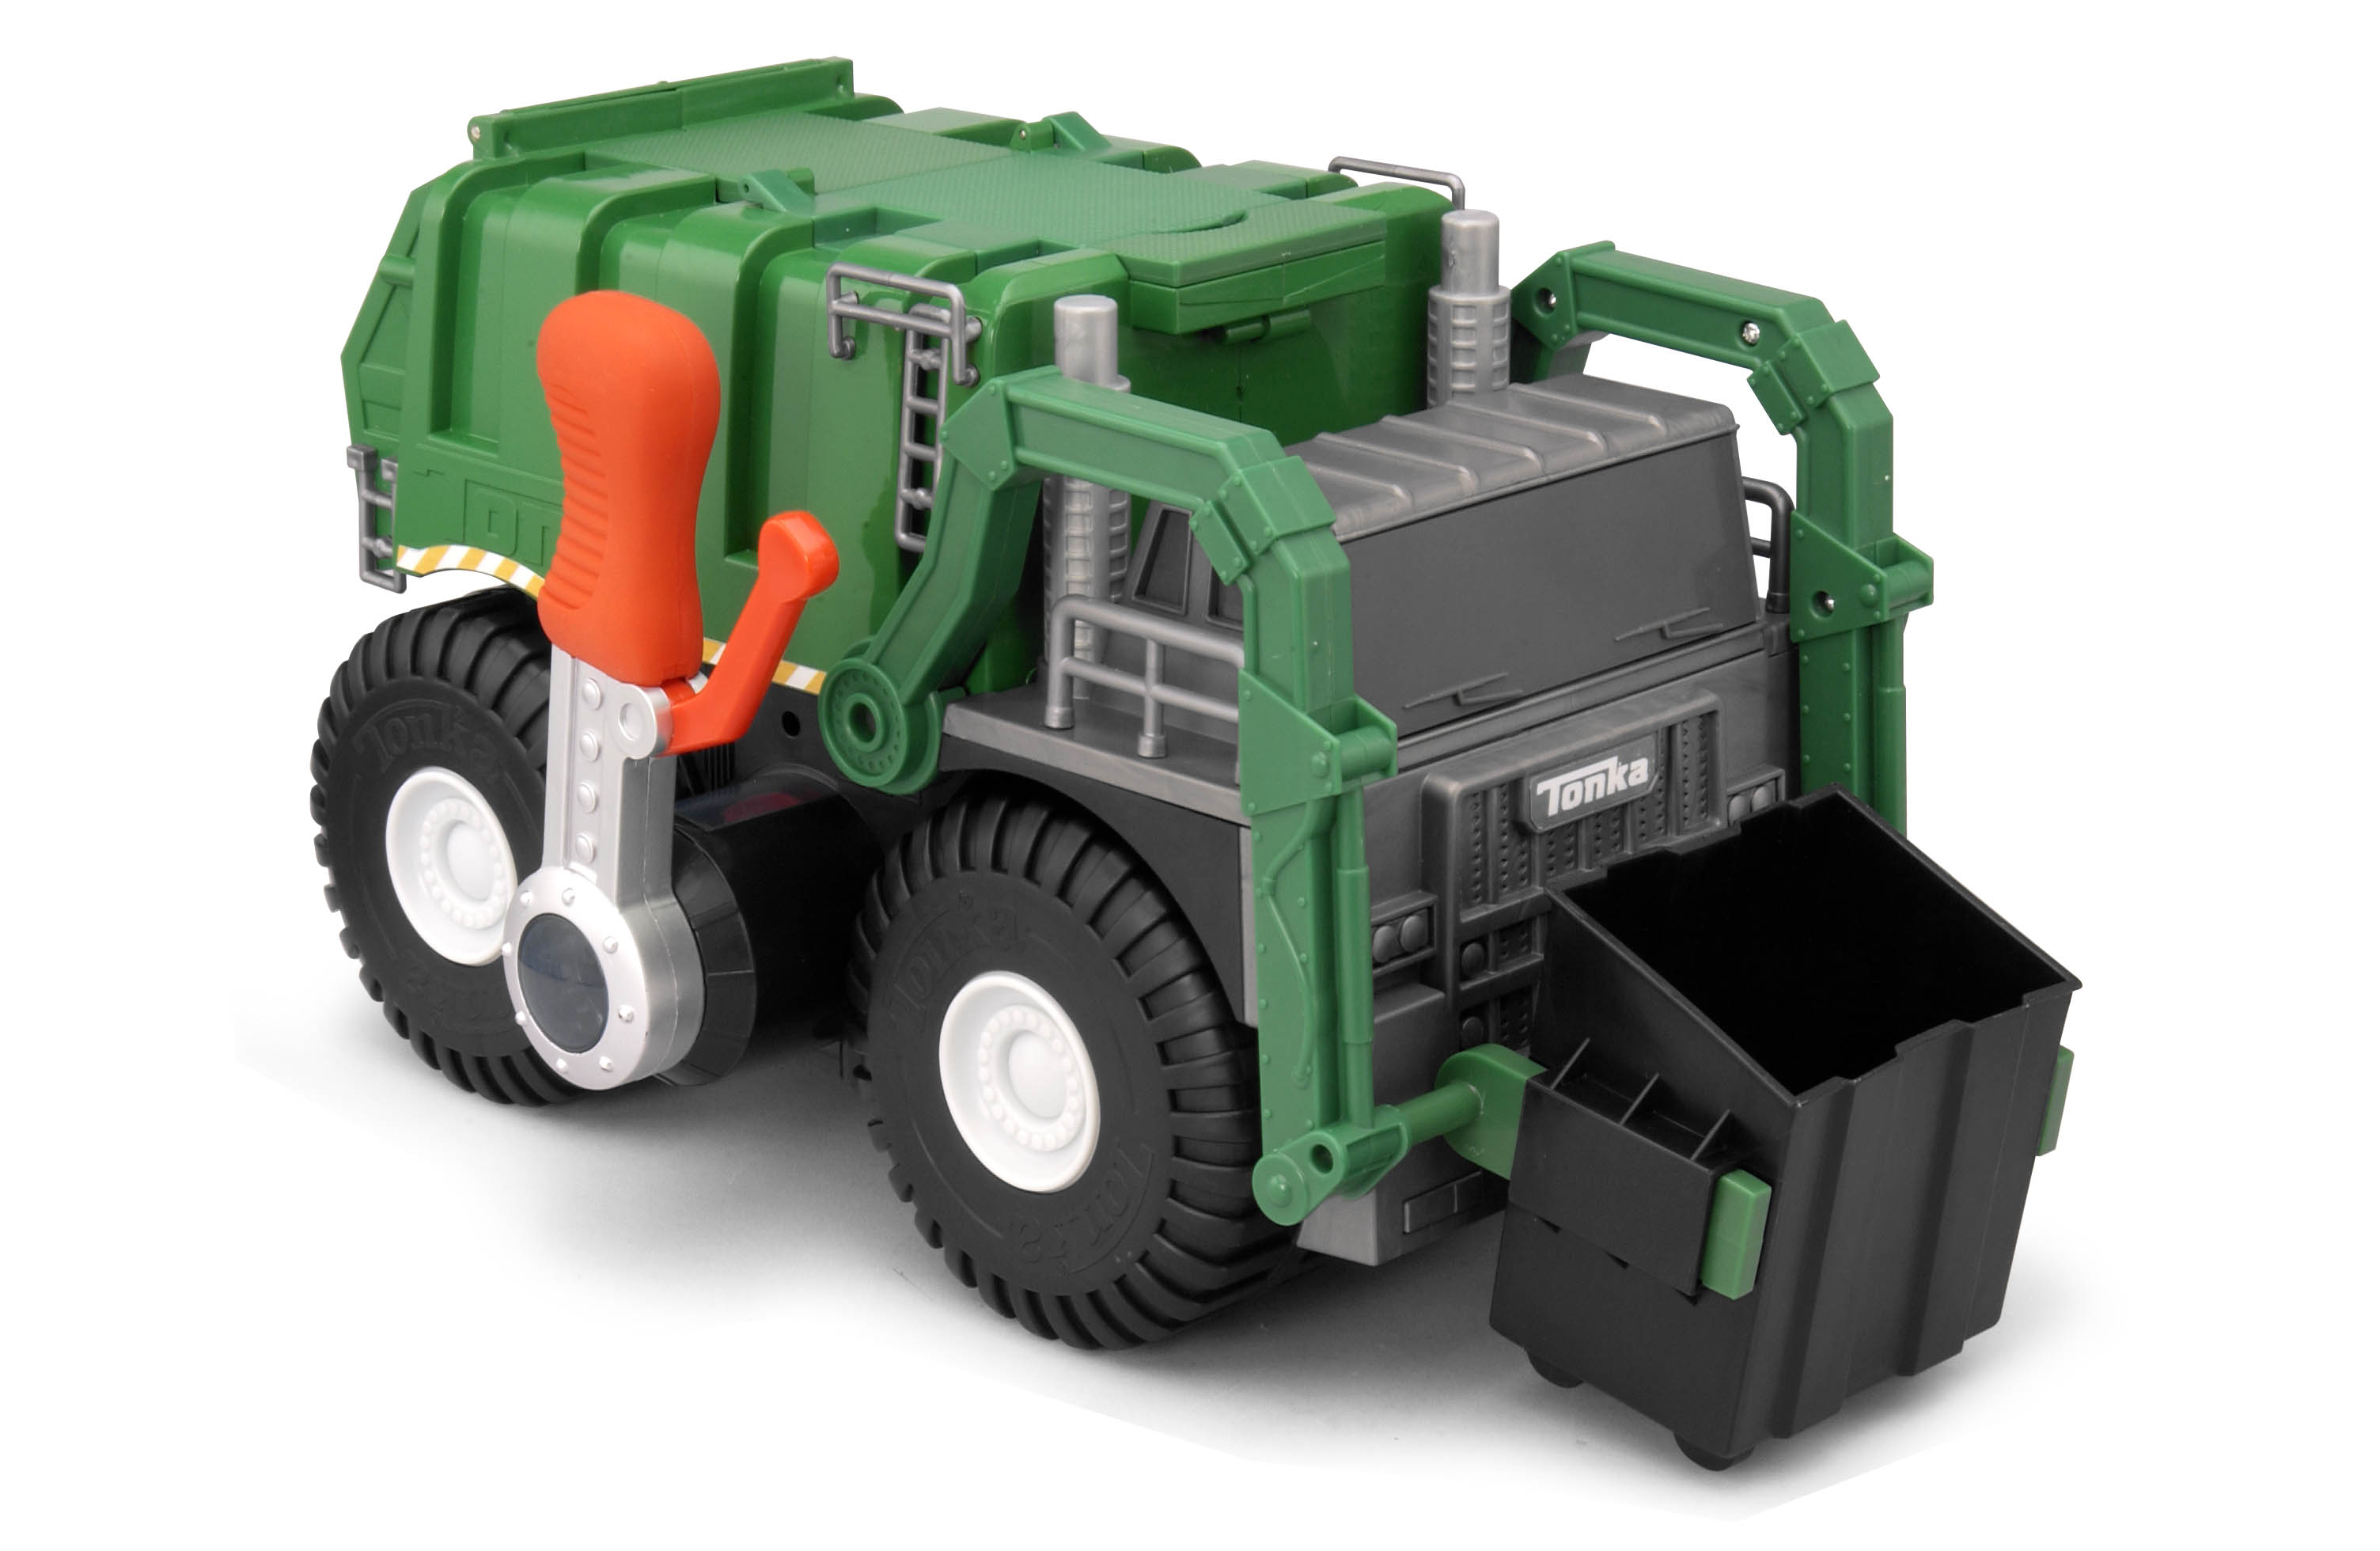 Tonka Toy Trucks >> Tonka Strong Arms Fire Engine and Garbage Trucks Honored ...